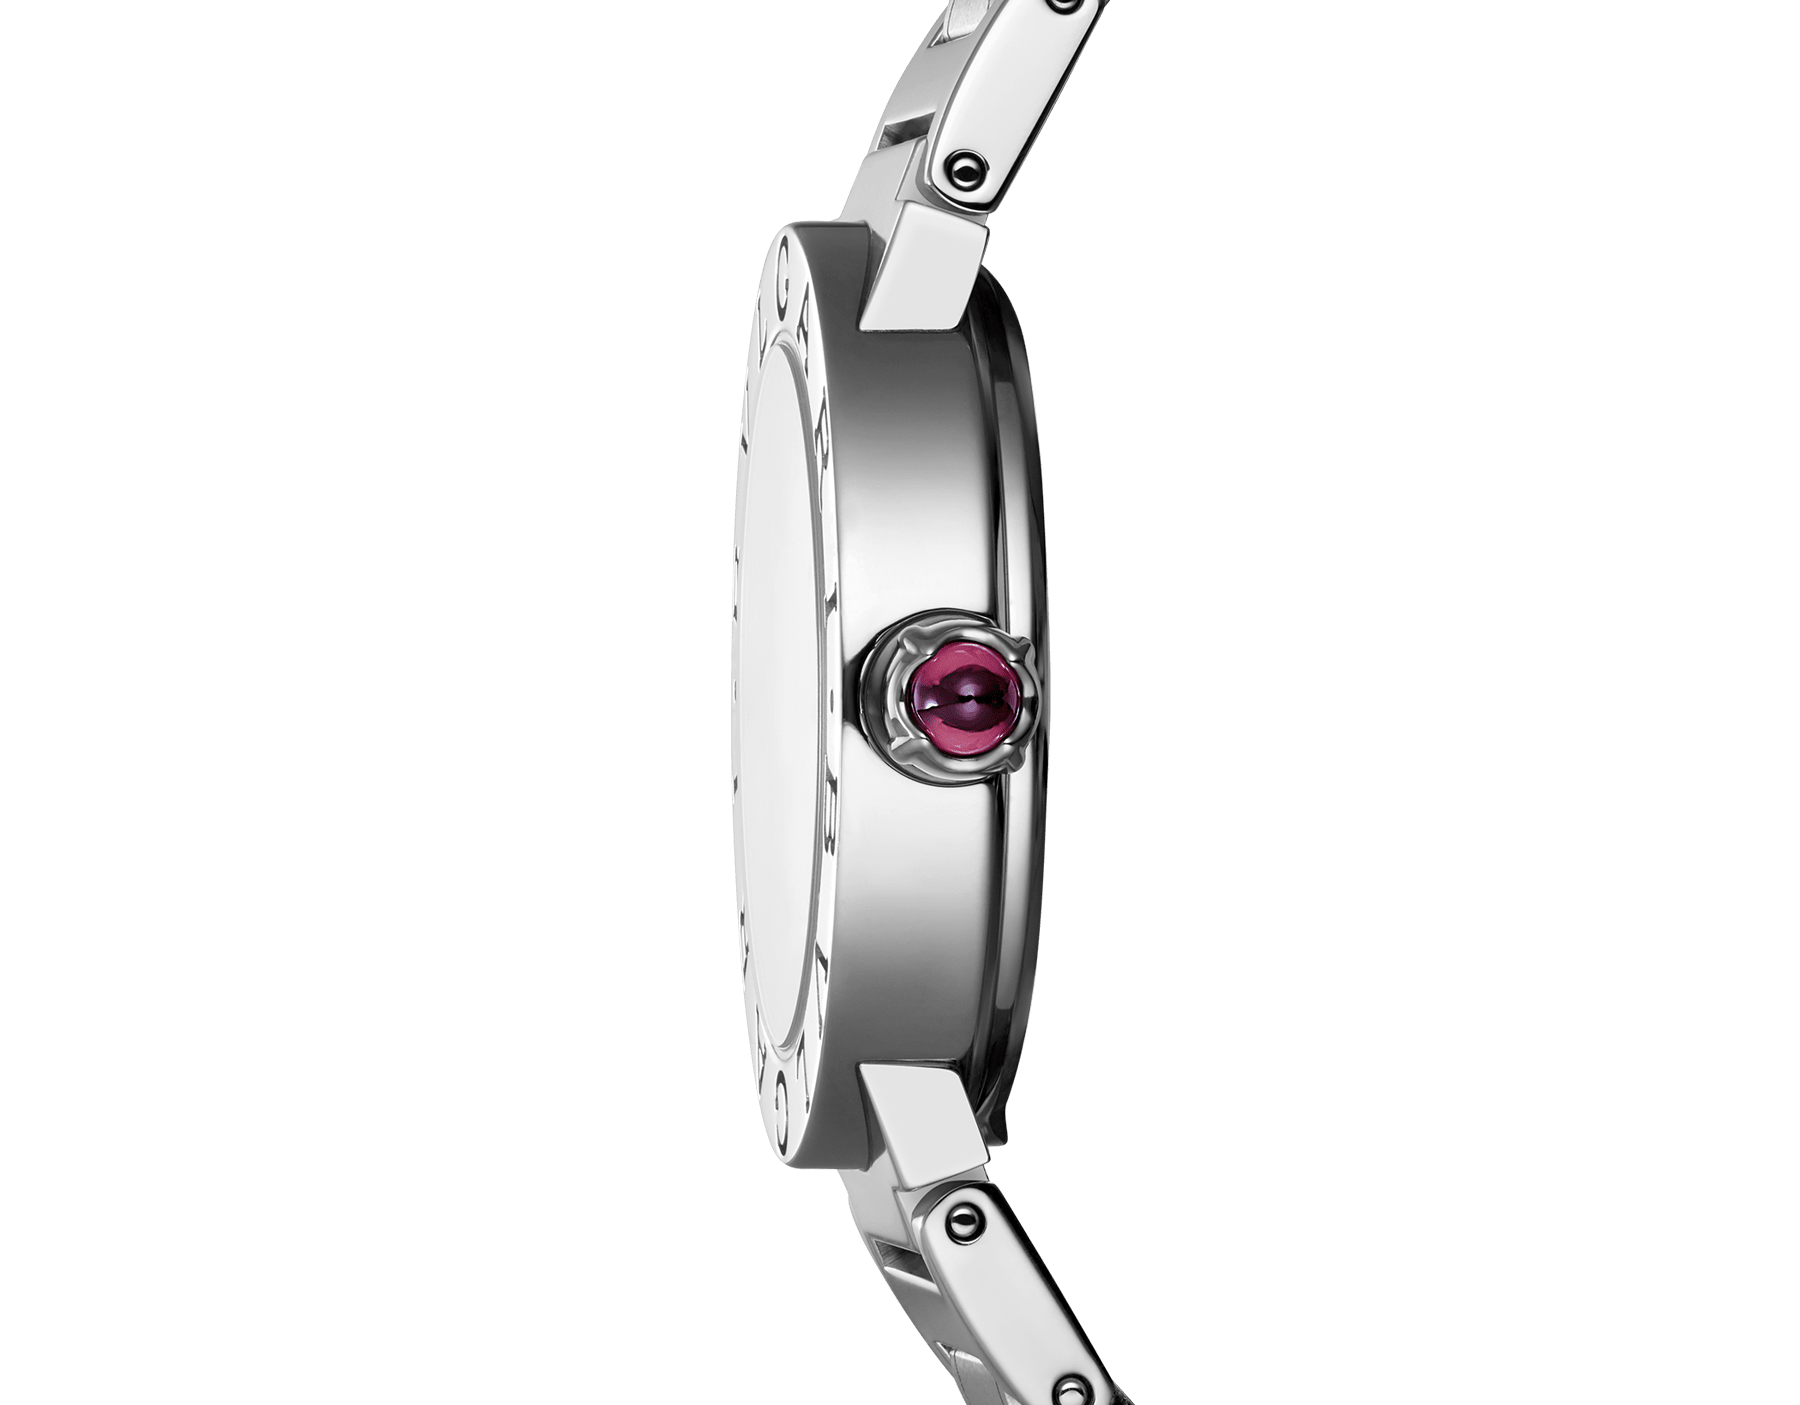 BVLGARI BVLGARI watch in stainless steel case and bracelet, with purple satiné soleil lacquered dial and diamond indexes 102606 image 3